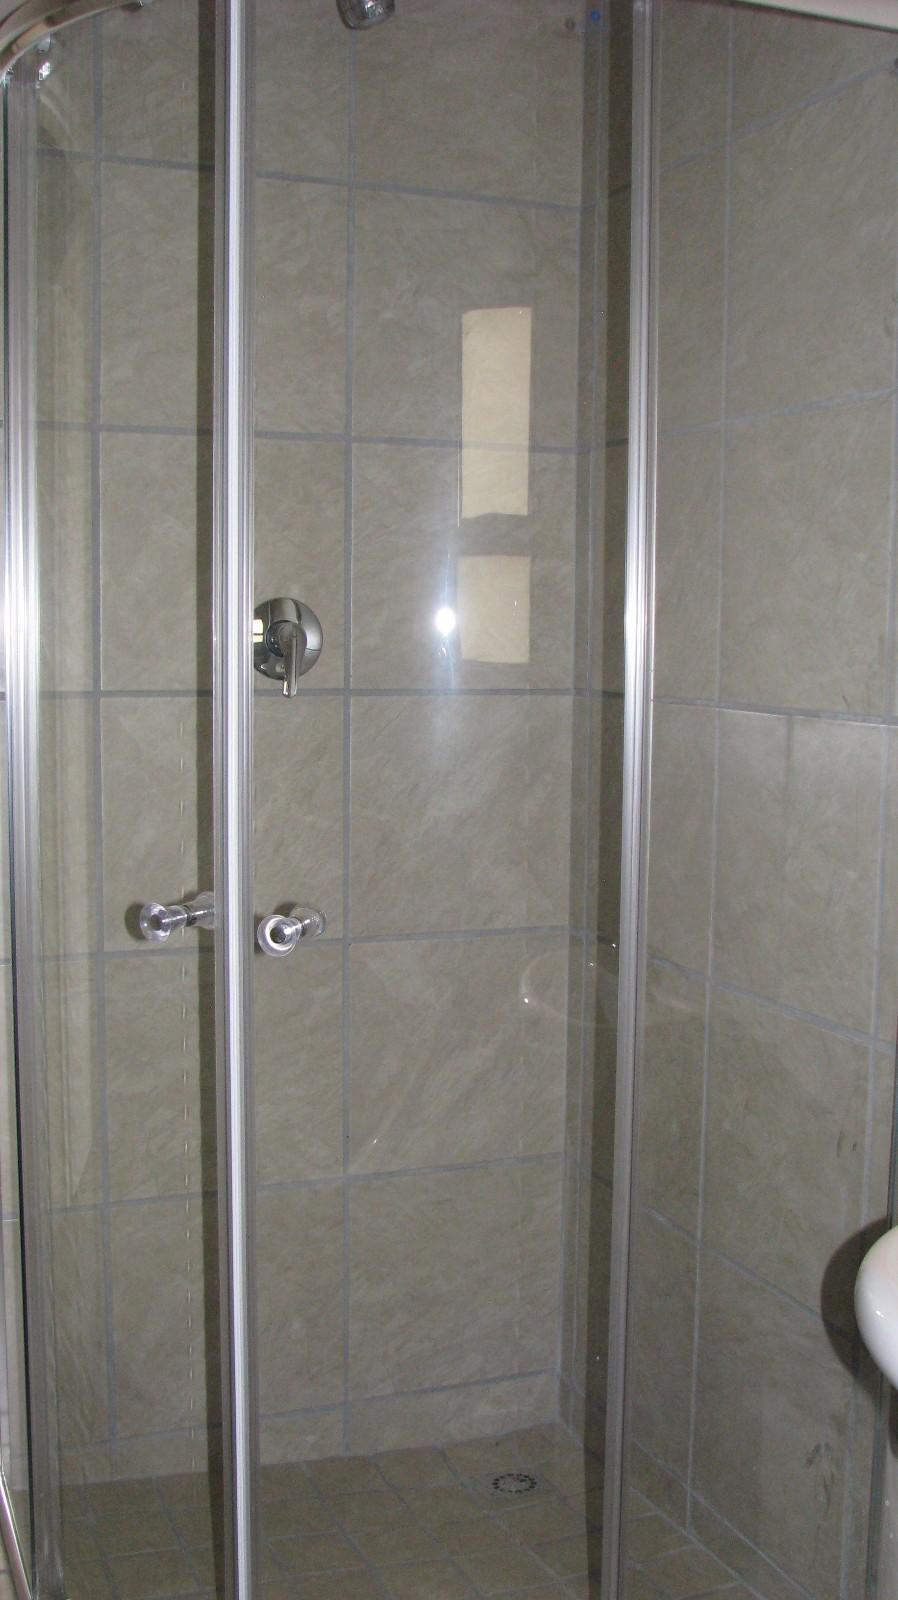 Apartment in Melodie - Shower unit